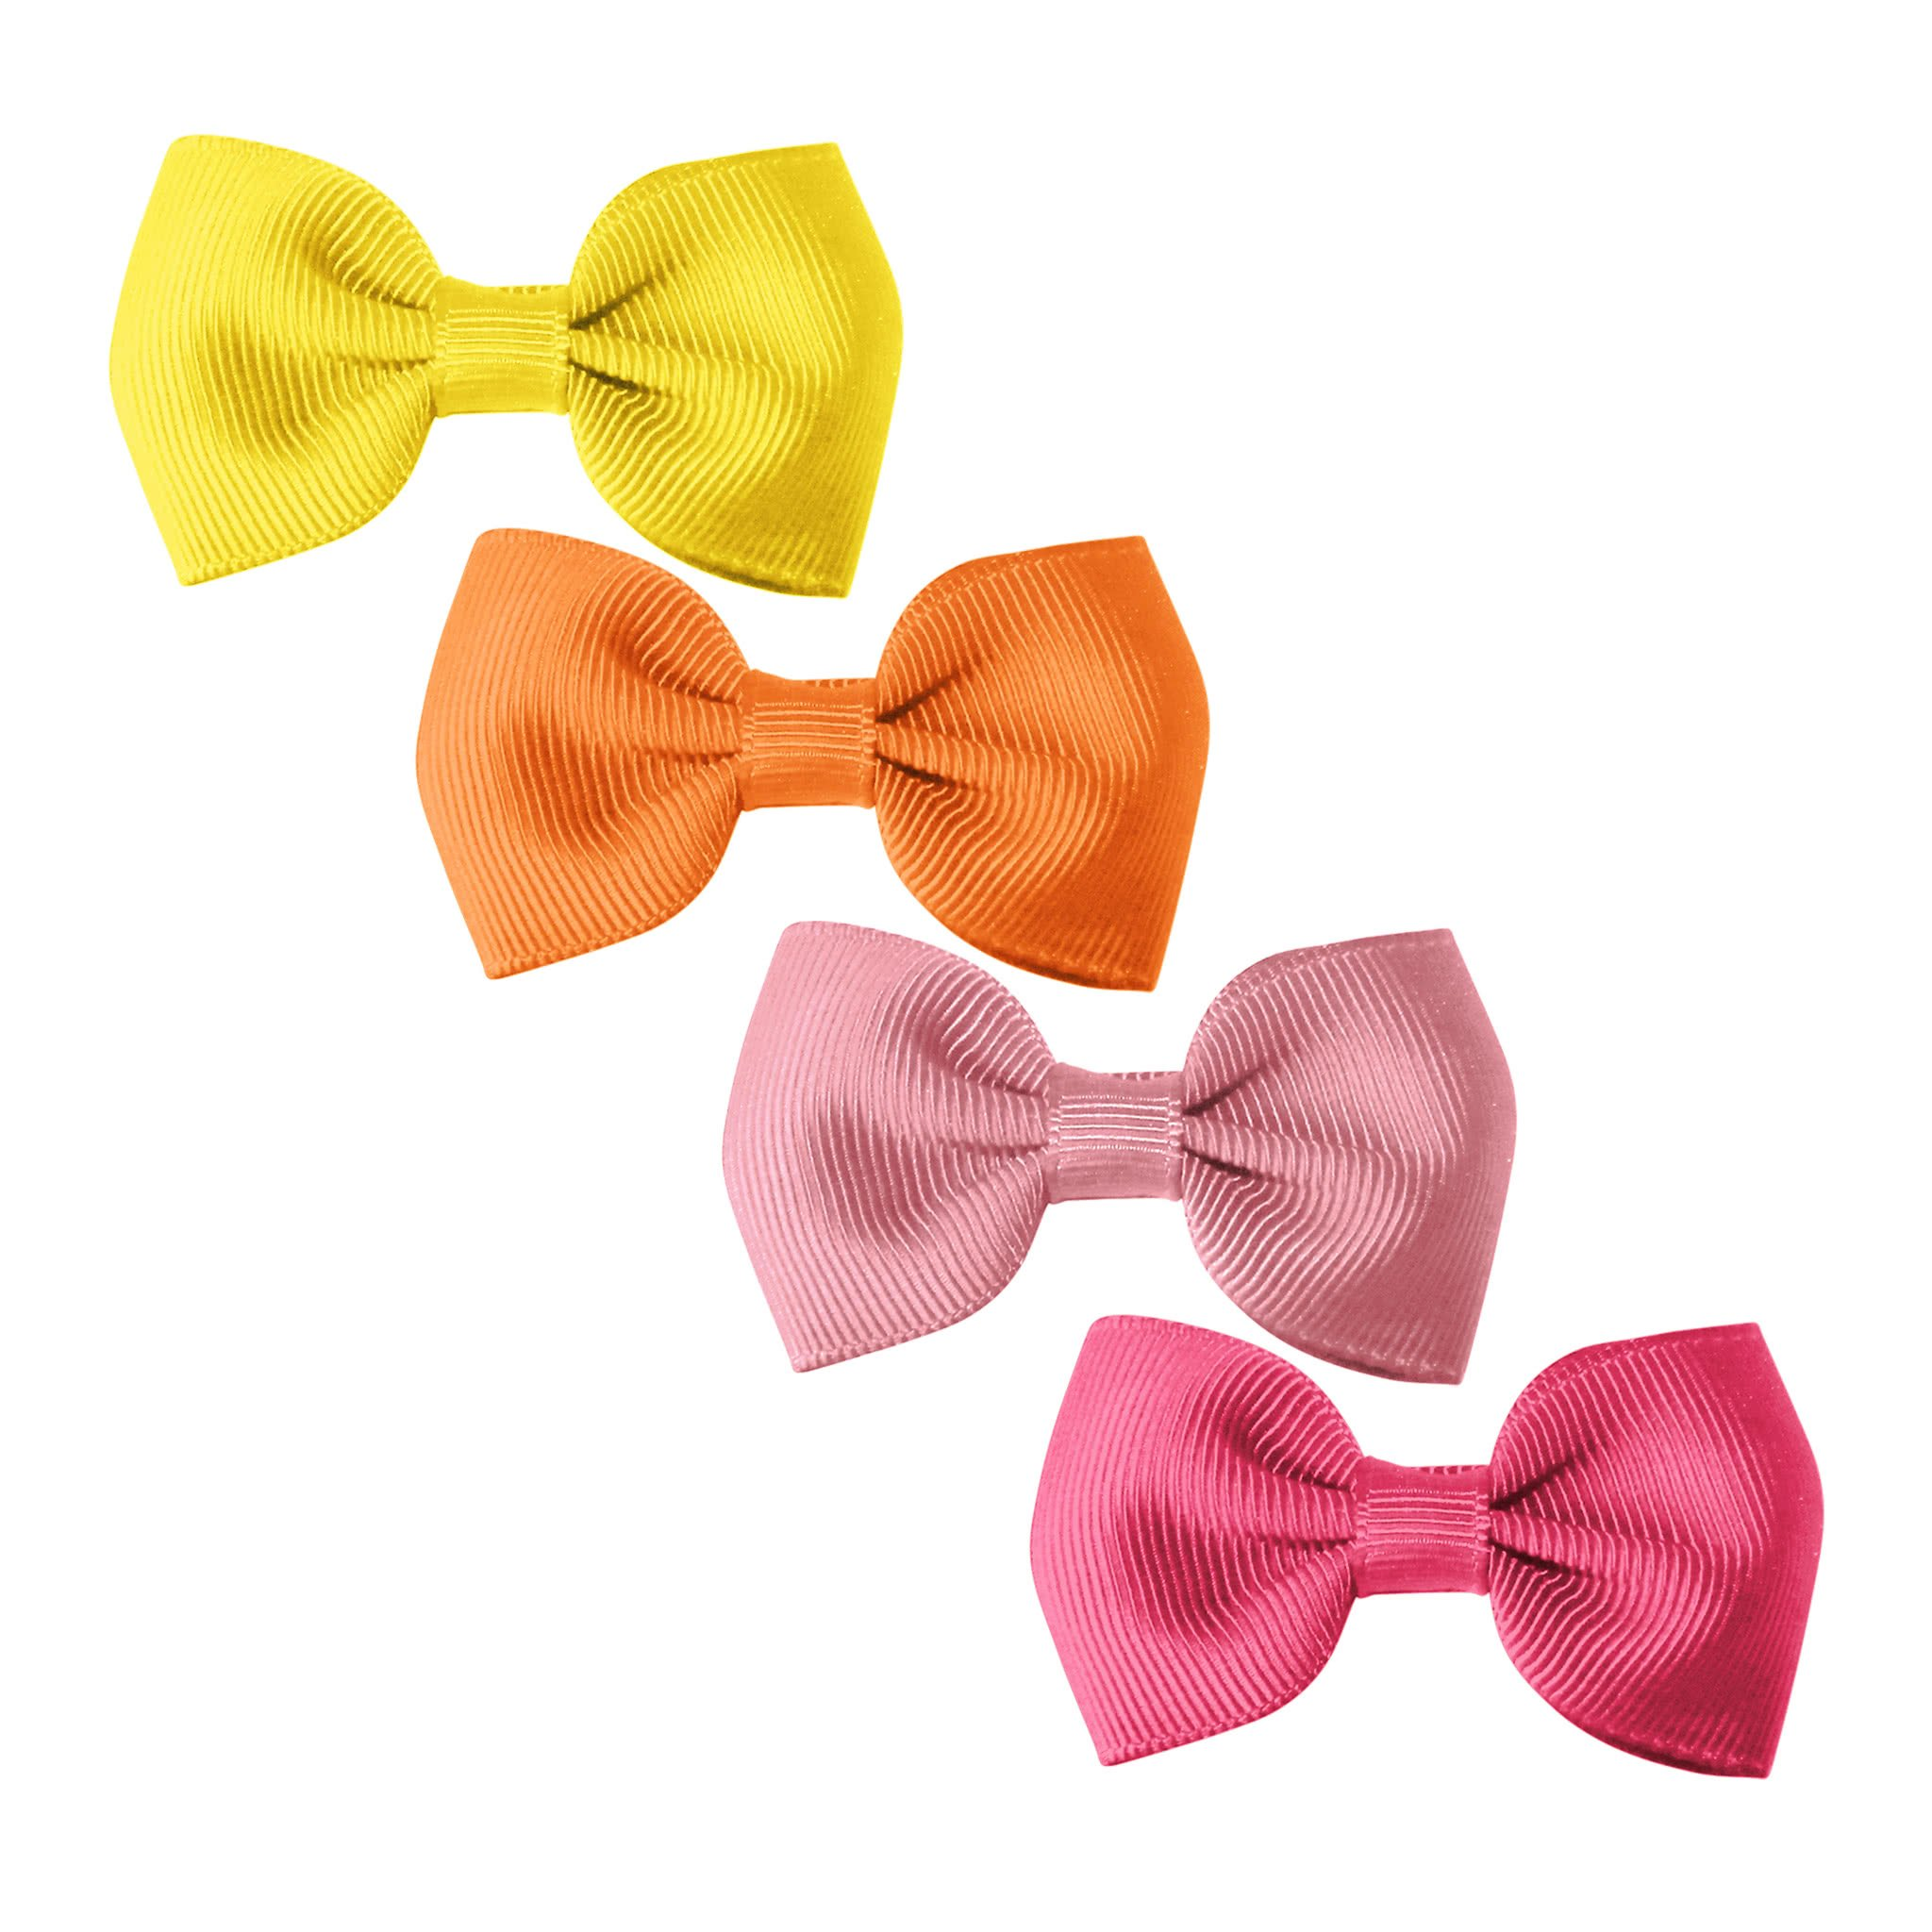 Image of Milledeux® Gift set - 4 Small bowtie bows - alligator clip - yellow/pinks